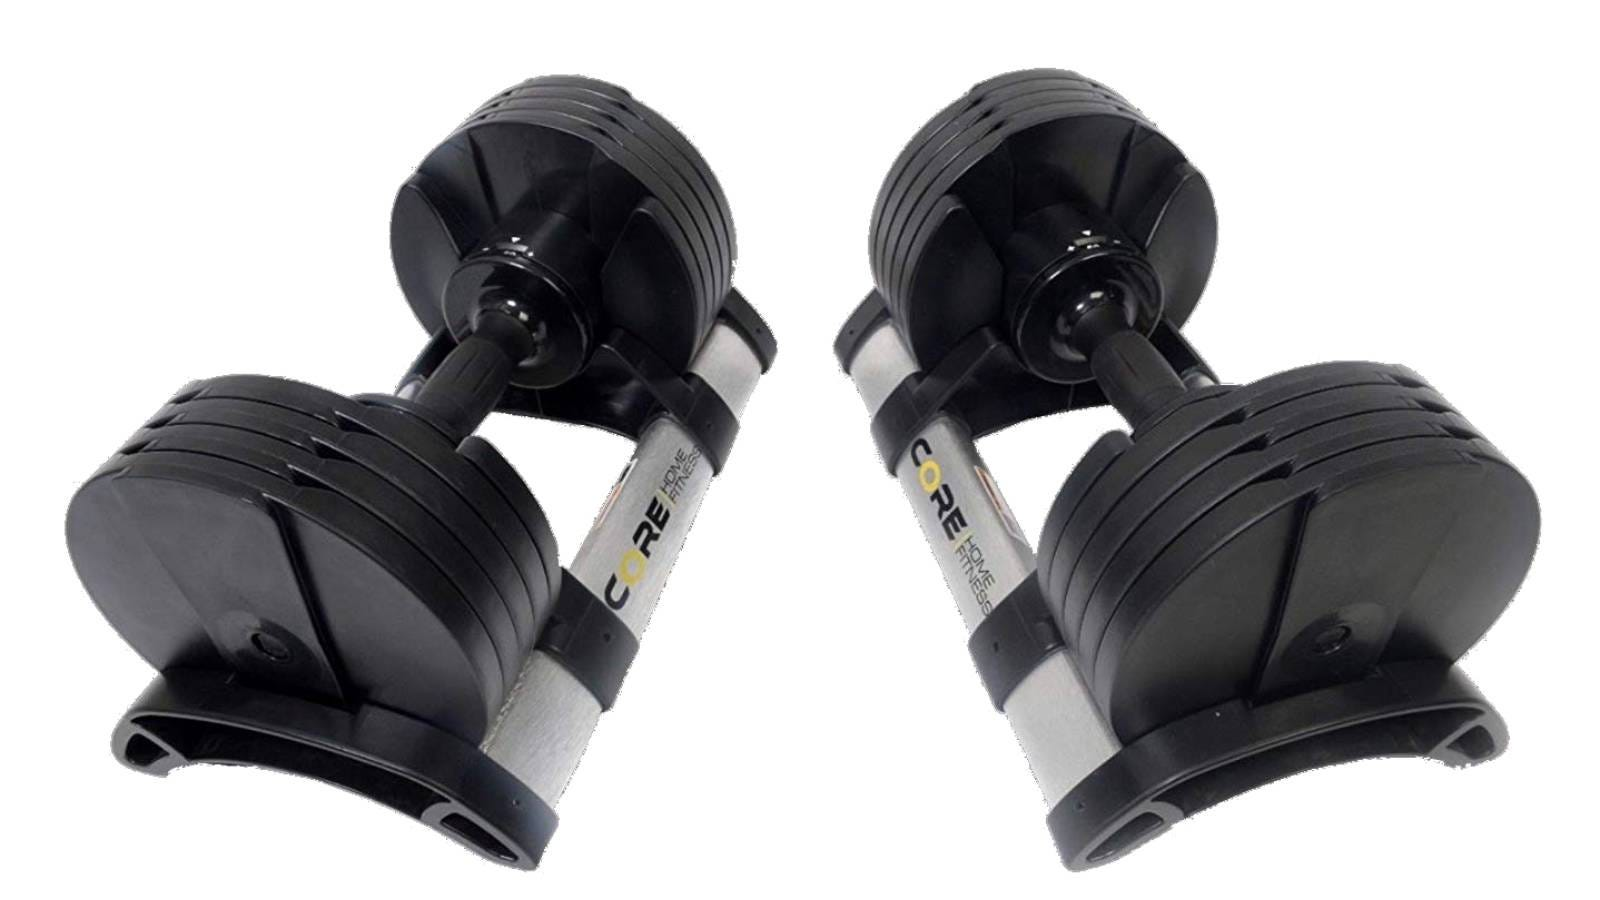 The Core Fitness Adjustable Dumbbell Set.